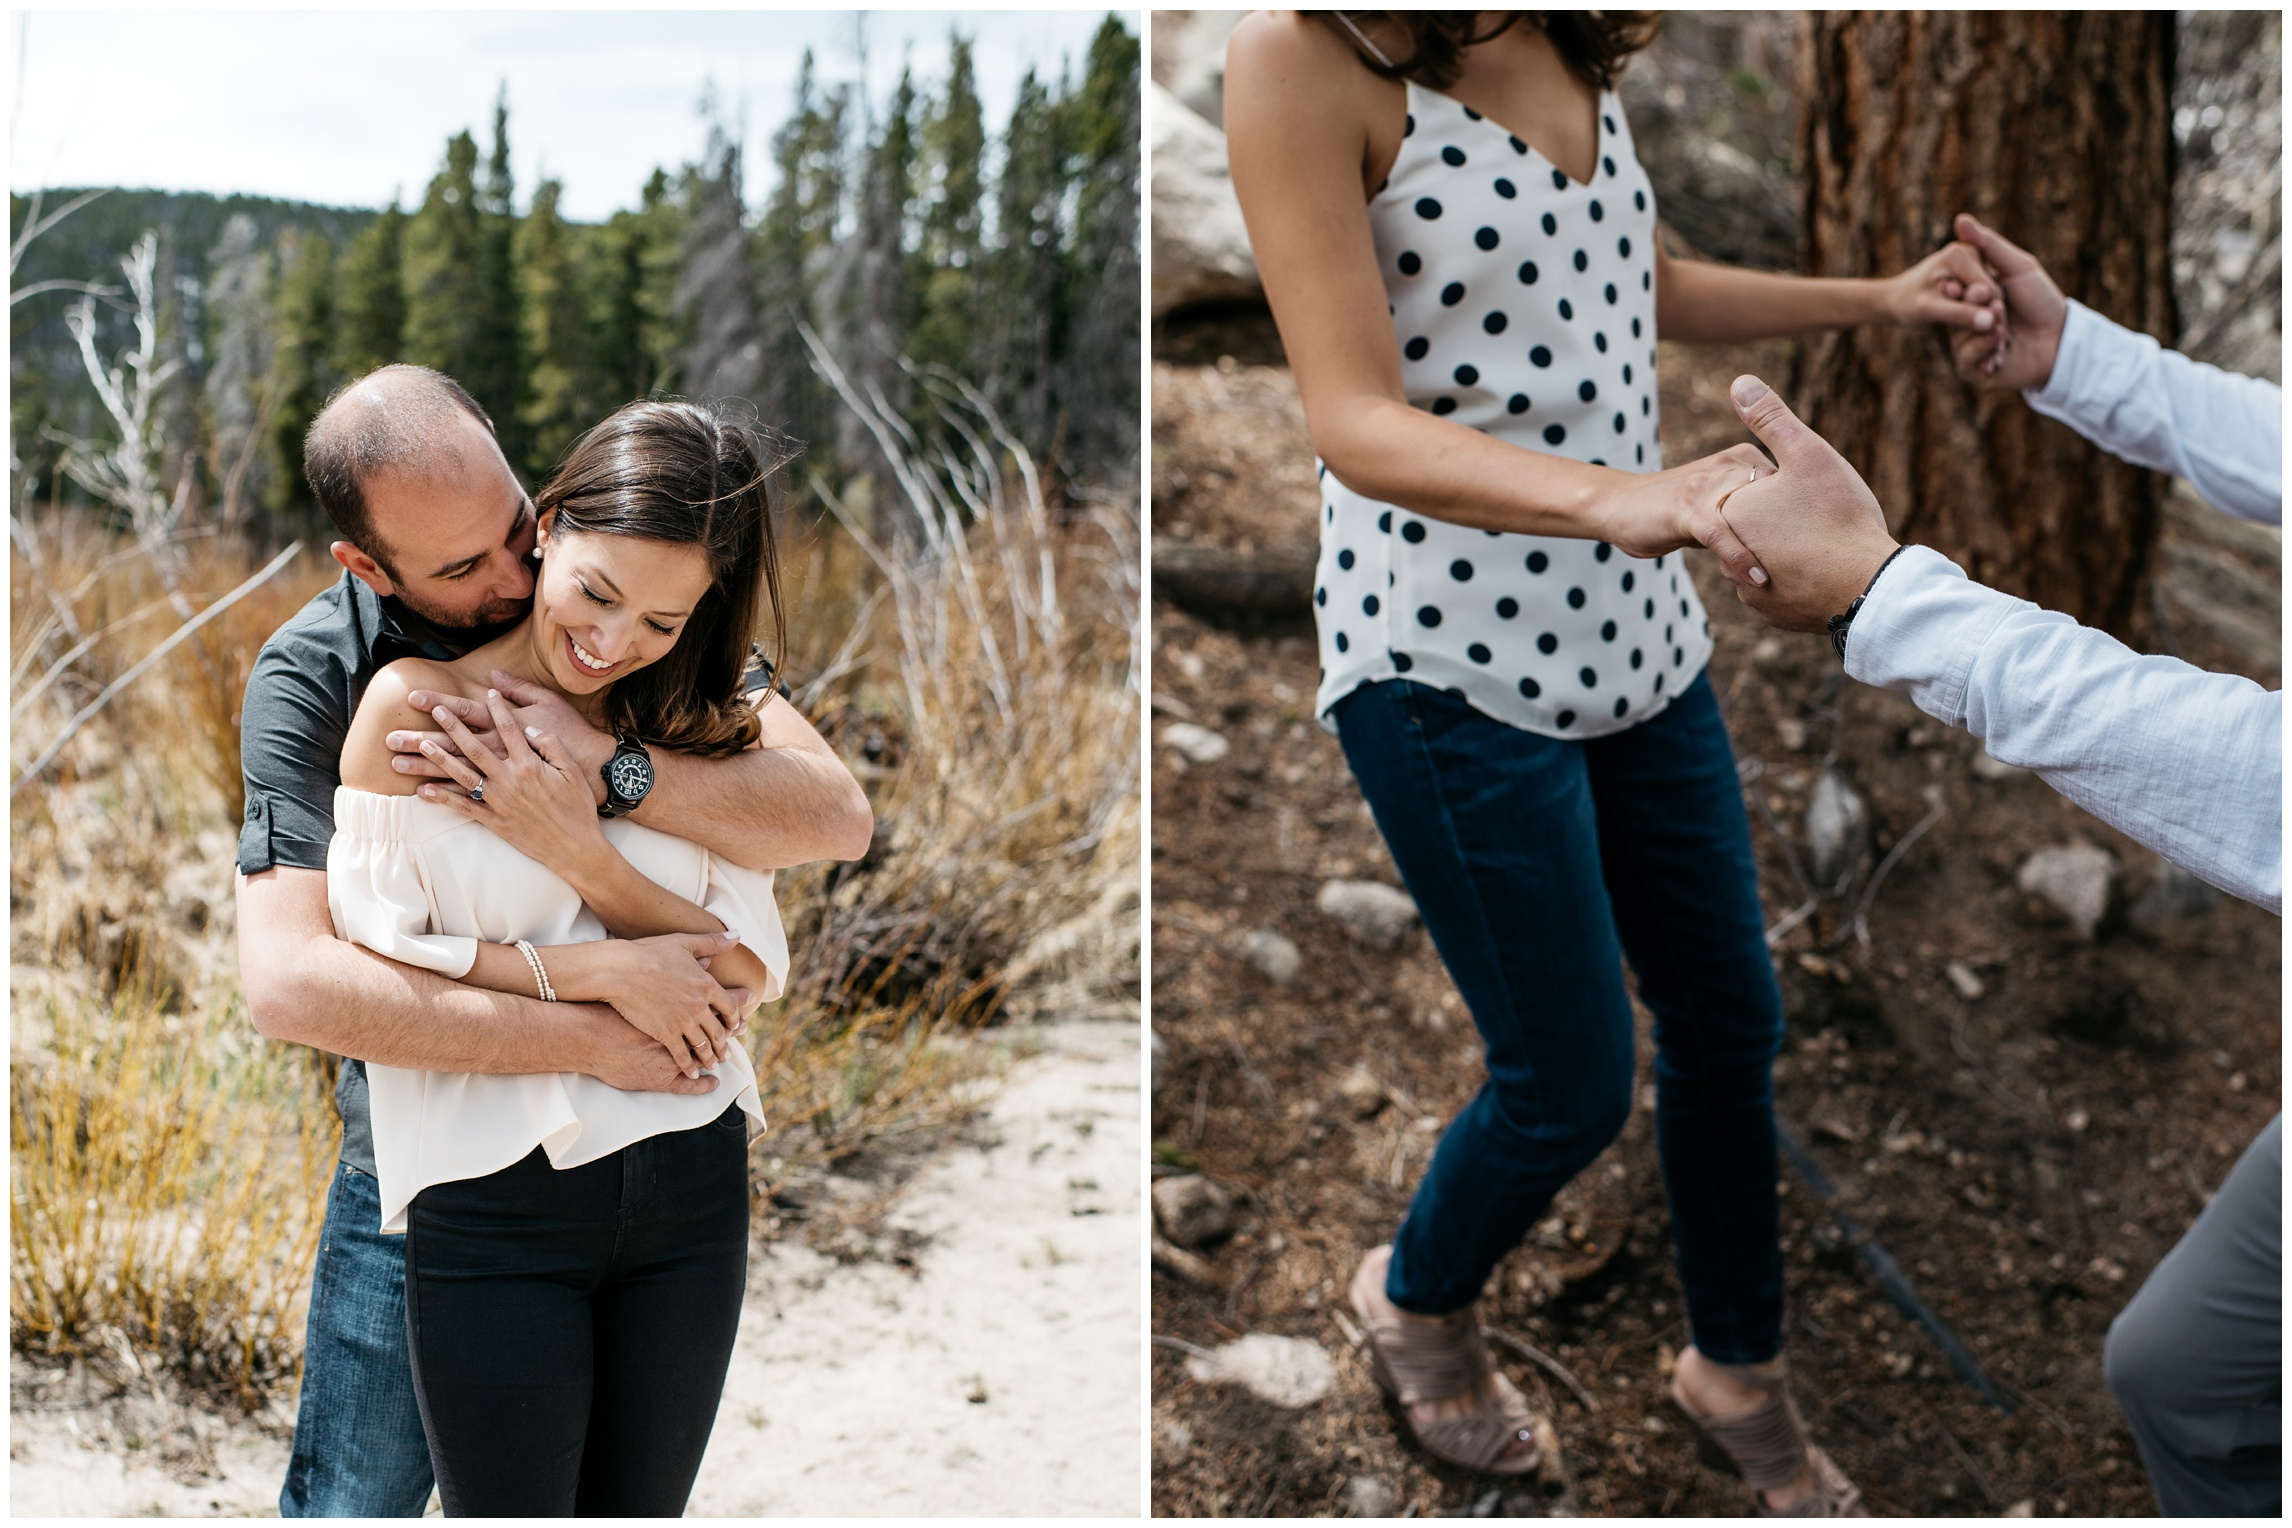 A young couple shares a loving embrace at Sprague Lake in Rocky Mountain National Park, Colorado. Engagement photography by Sonja Salzburg of Sonja K Photography.